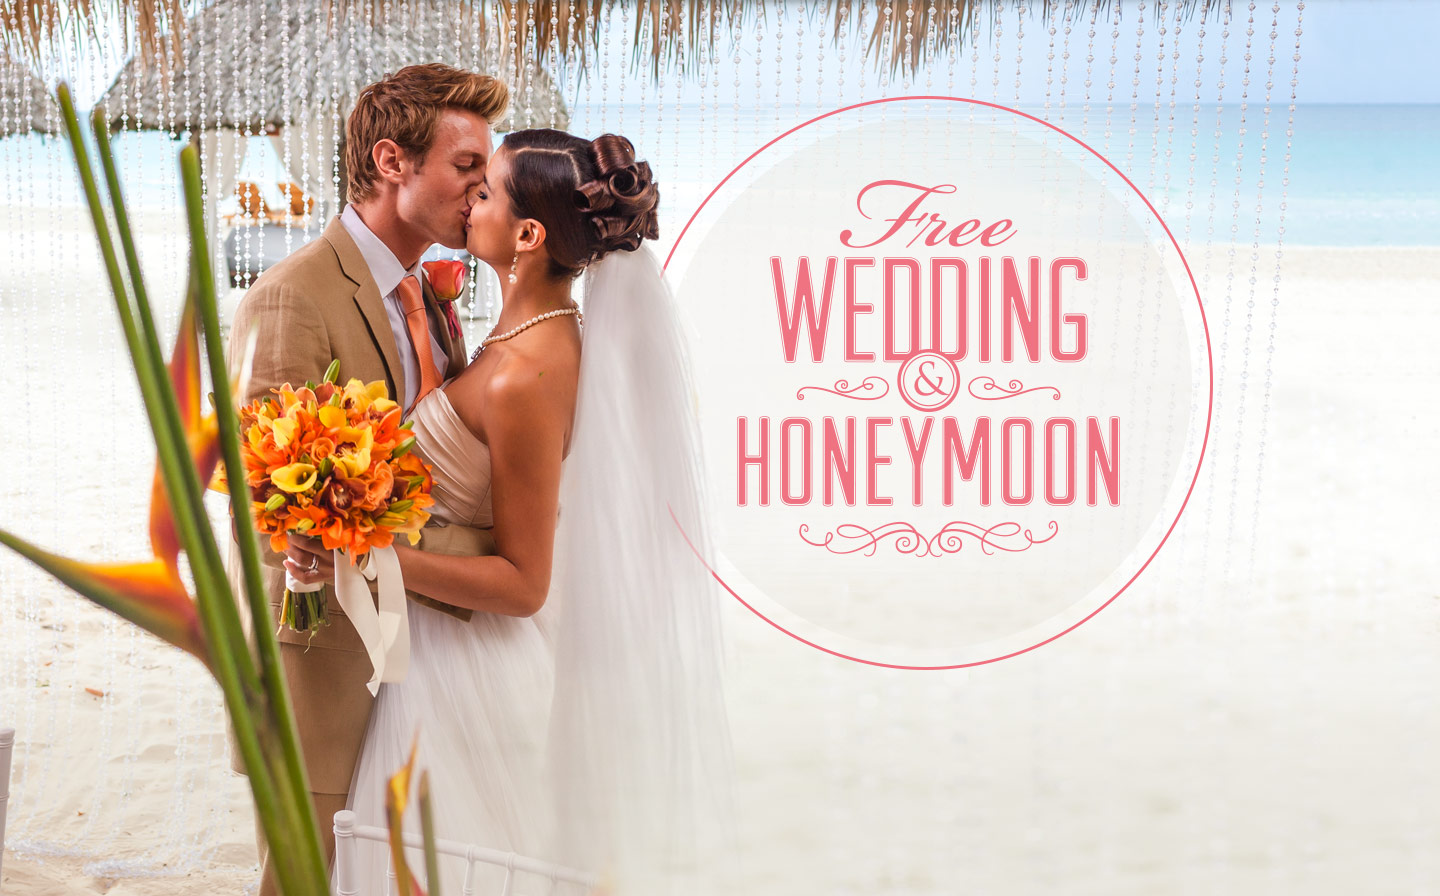 Free wedding honeymoon deal from beaches resorts beaches set along the best beaches in the caribbean with every luxury included your dream wedding and the perfect honeymoon come together for an exclusive beaches junglespirit Images